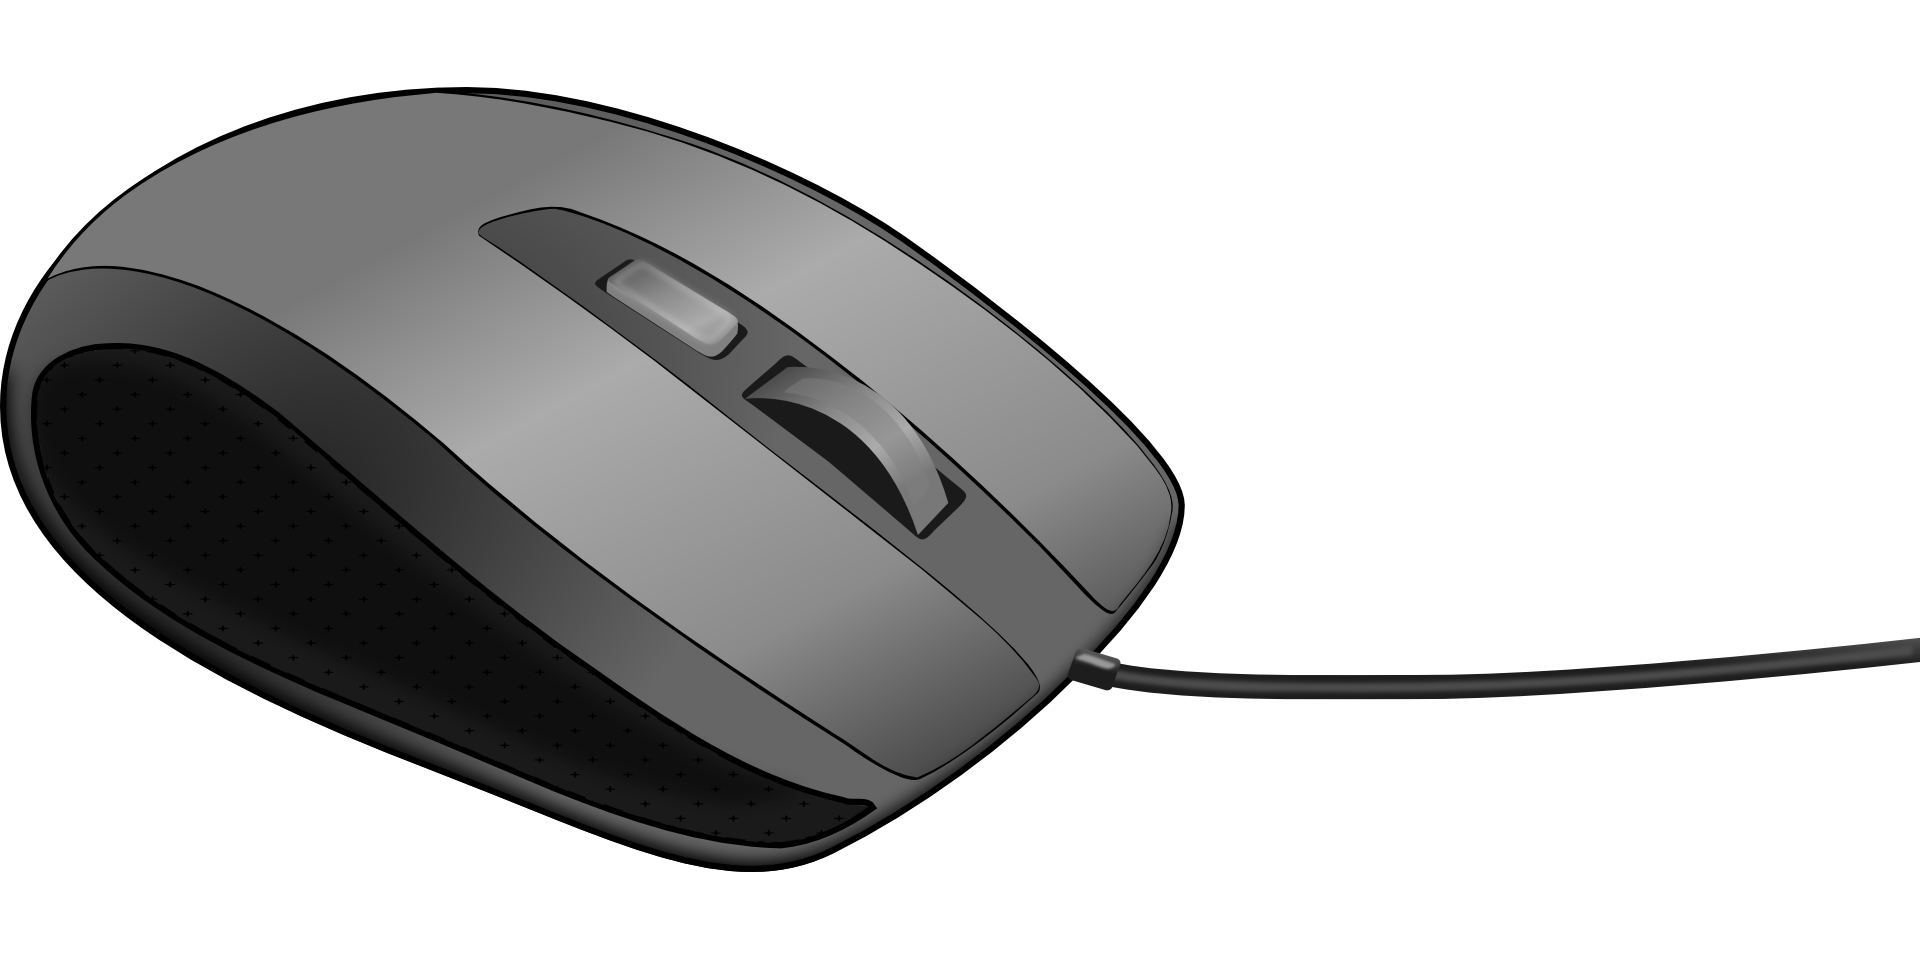 Drawing device input. Computer mouse white black